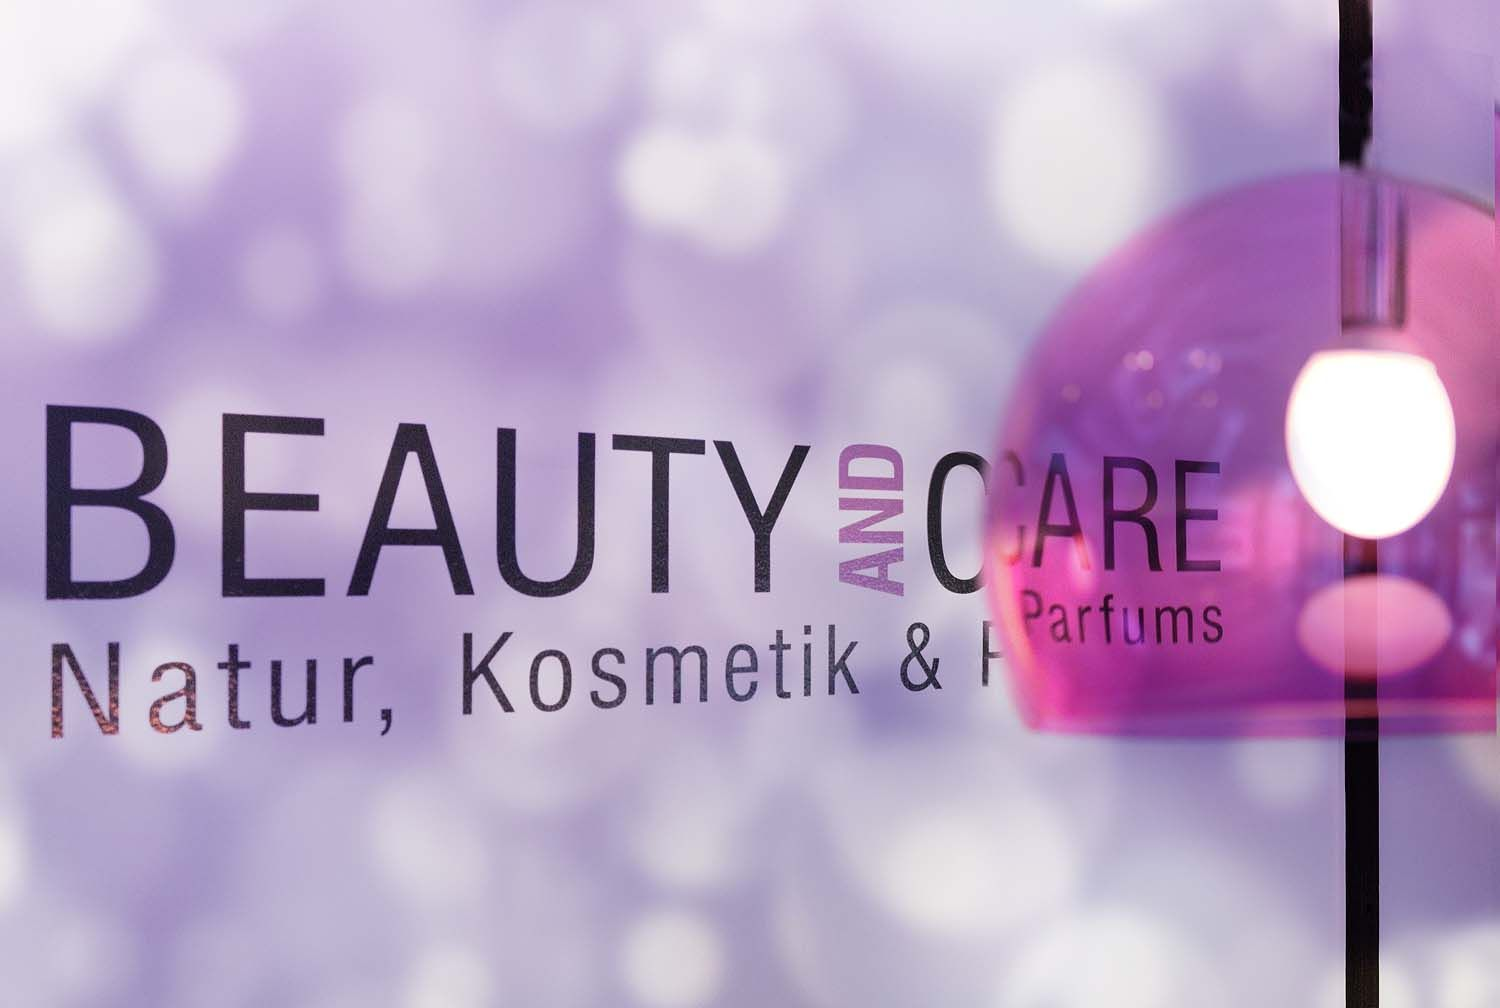 Beauty and Care Shop in der Langen Str. 111 in Bad Driburg ...